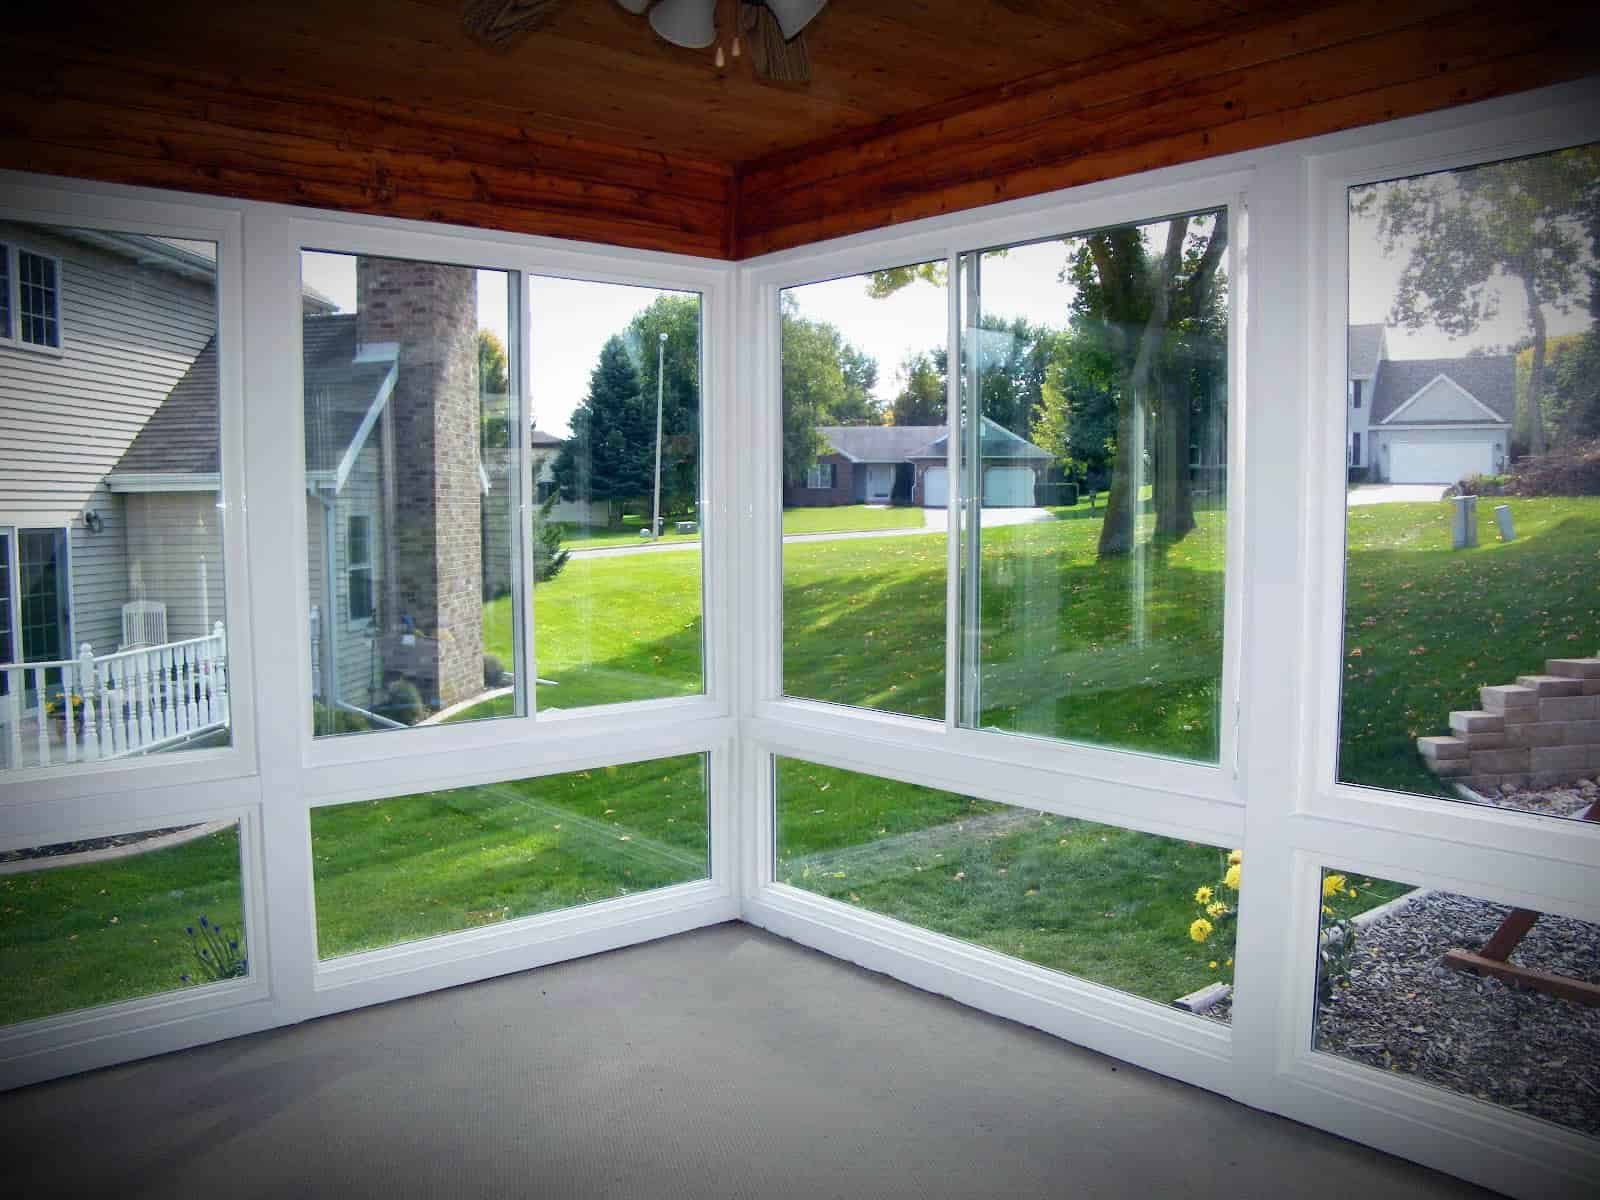 Do you Need a Permit for a Patio Enclosure?